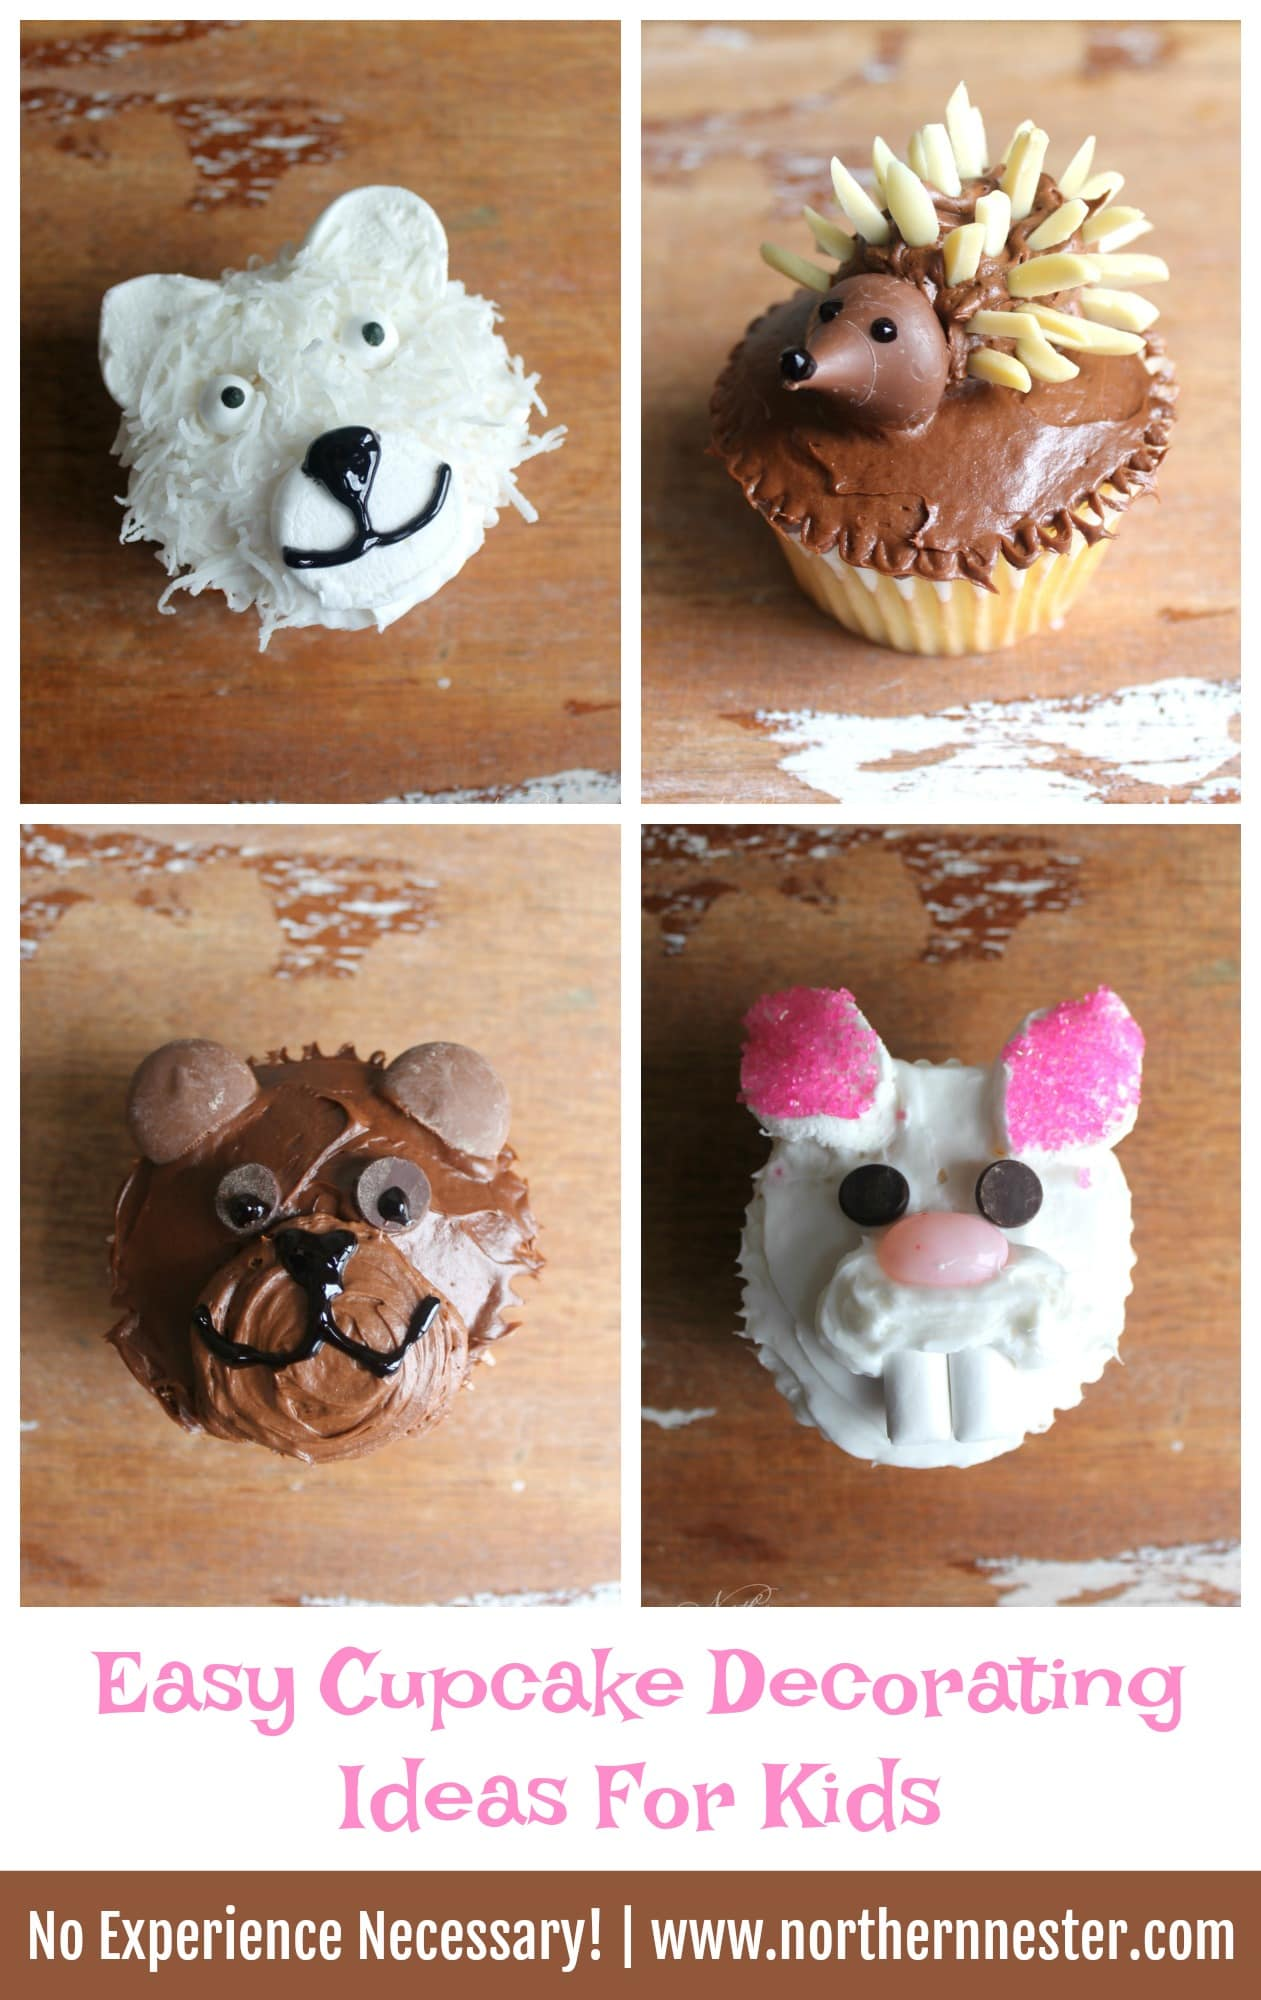 ... Brown Bear Cupcakes could easily be made that way with on-plan chocolate frosting and melted dark chocolate in place of the decorating gel!) ... & Easy Cupcake Decorating Ideas For Kids - Northern Nester